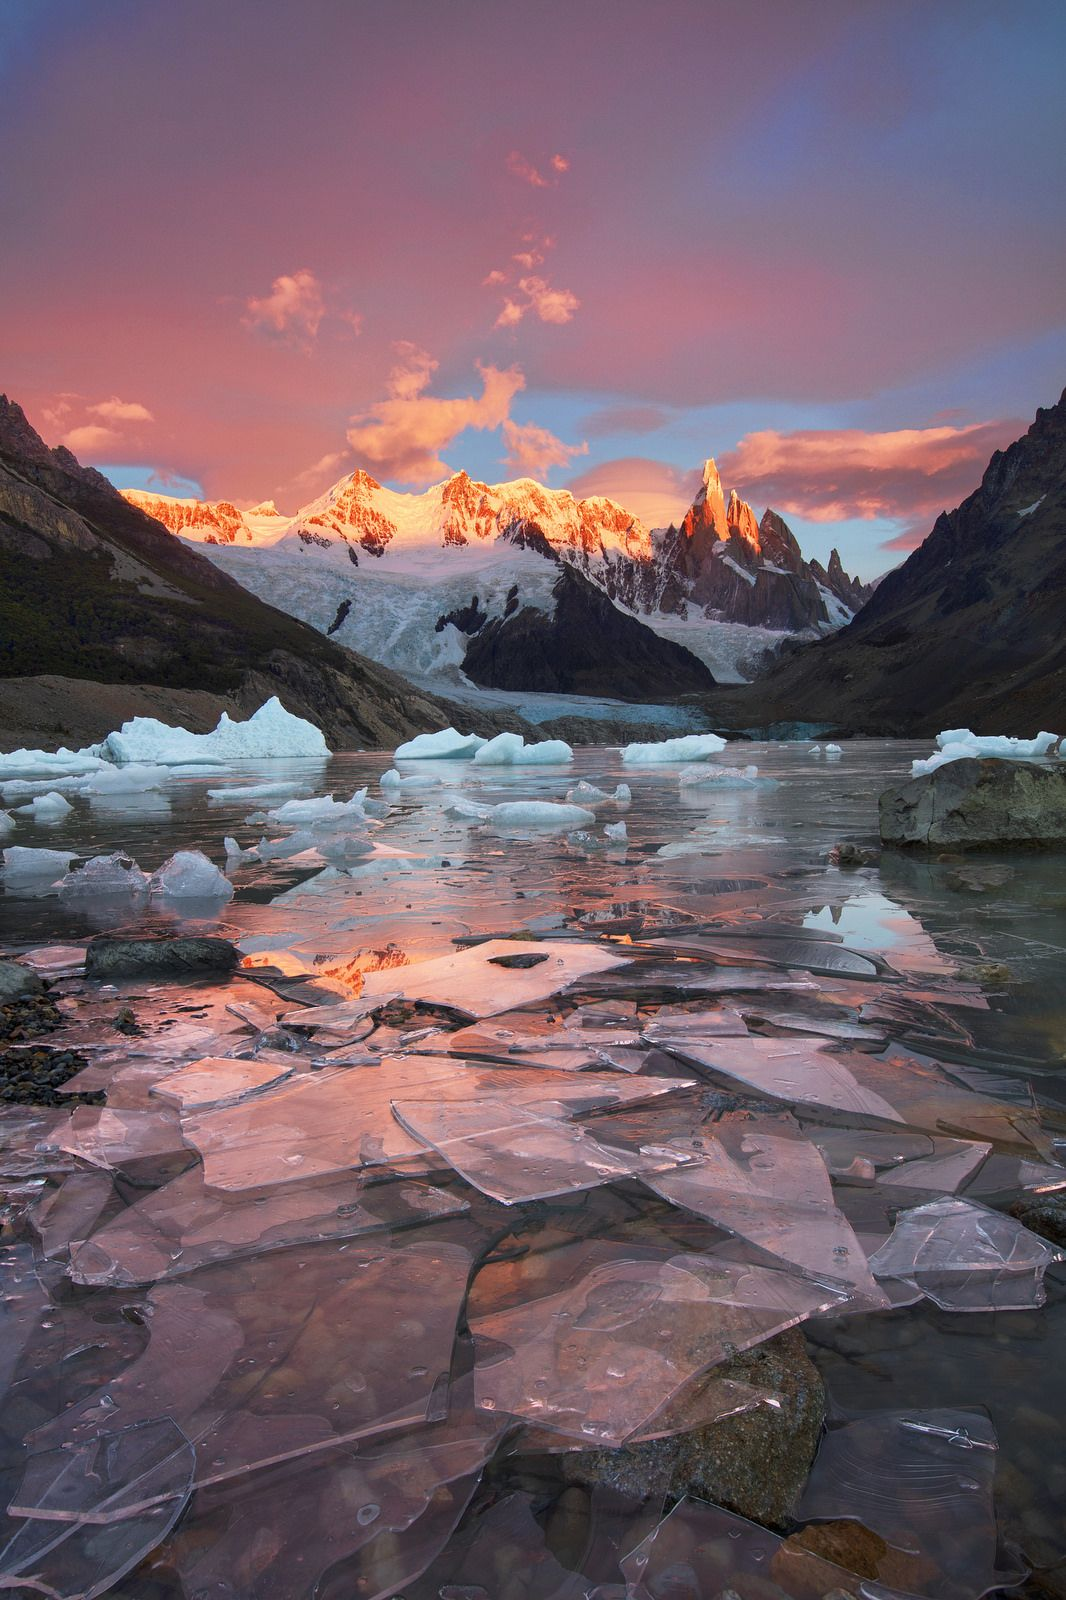 A red sky and shards of ice near Cerro Torre, Patagonia by Jane Wei - #funny #lol #viralvids #funnypics #EarthPorn more at: http://www.smellifish.com